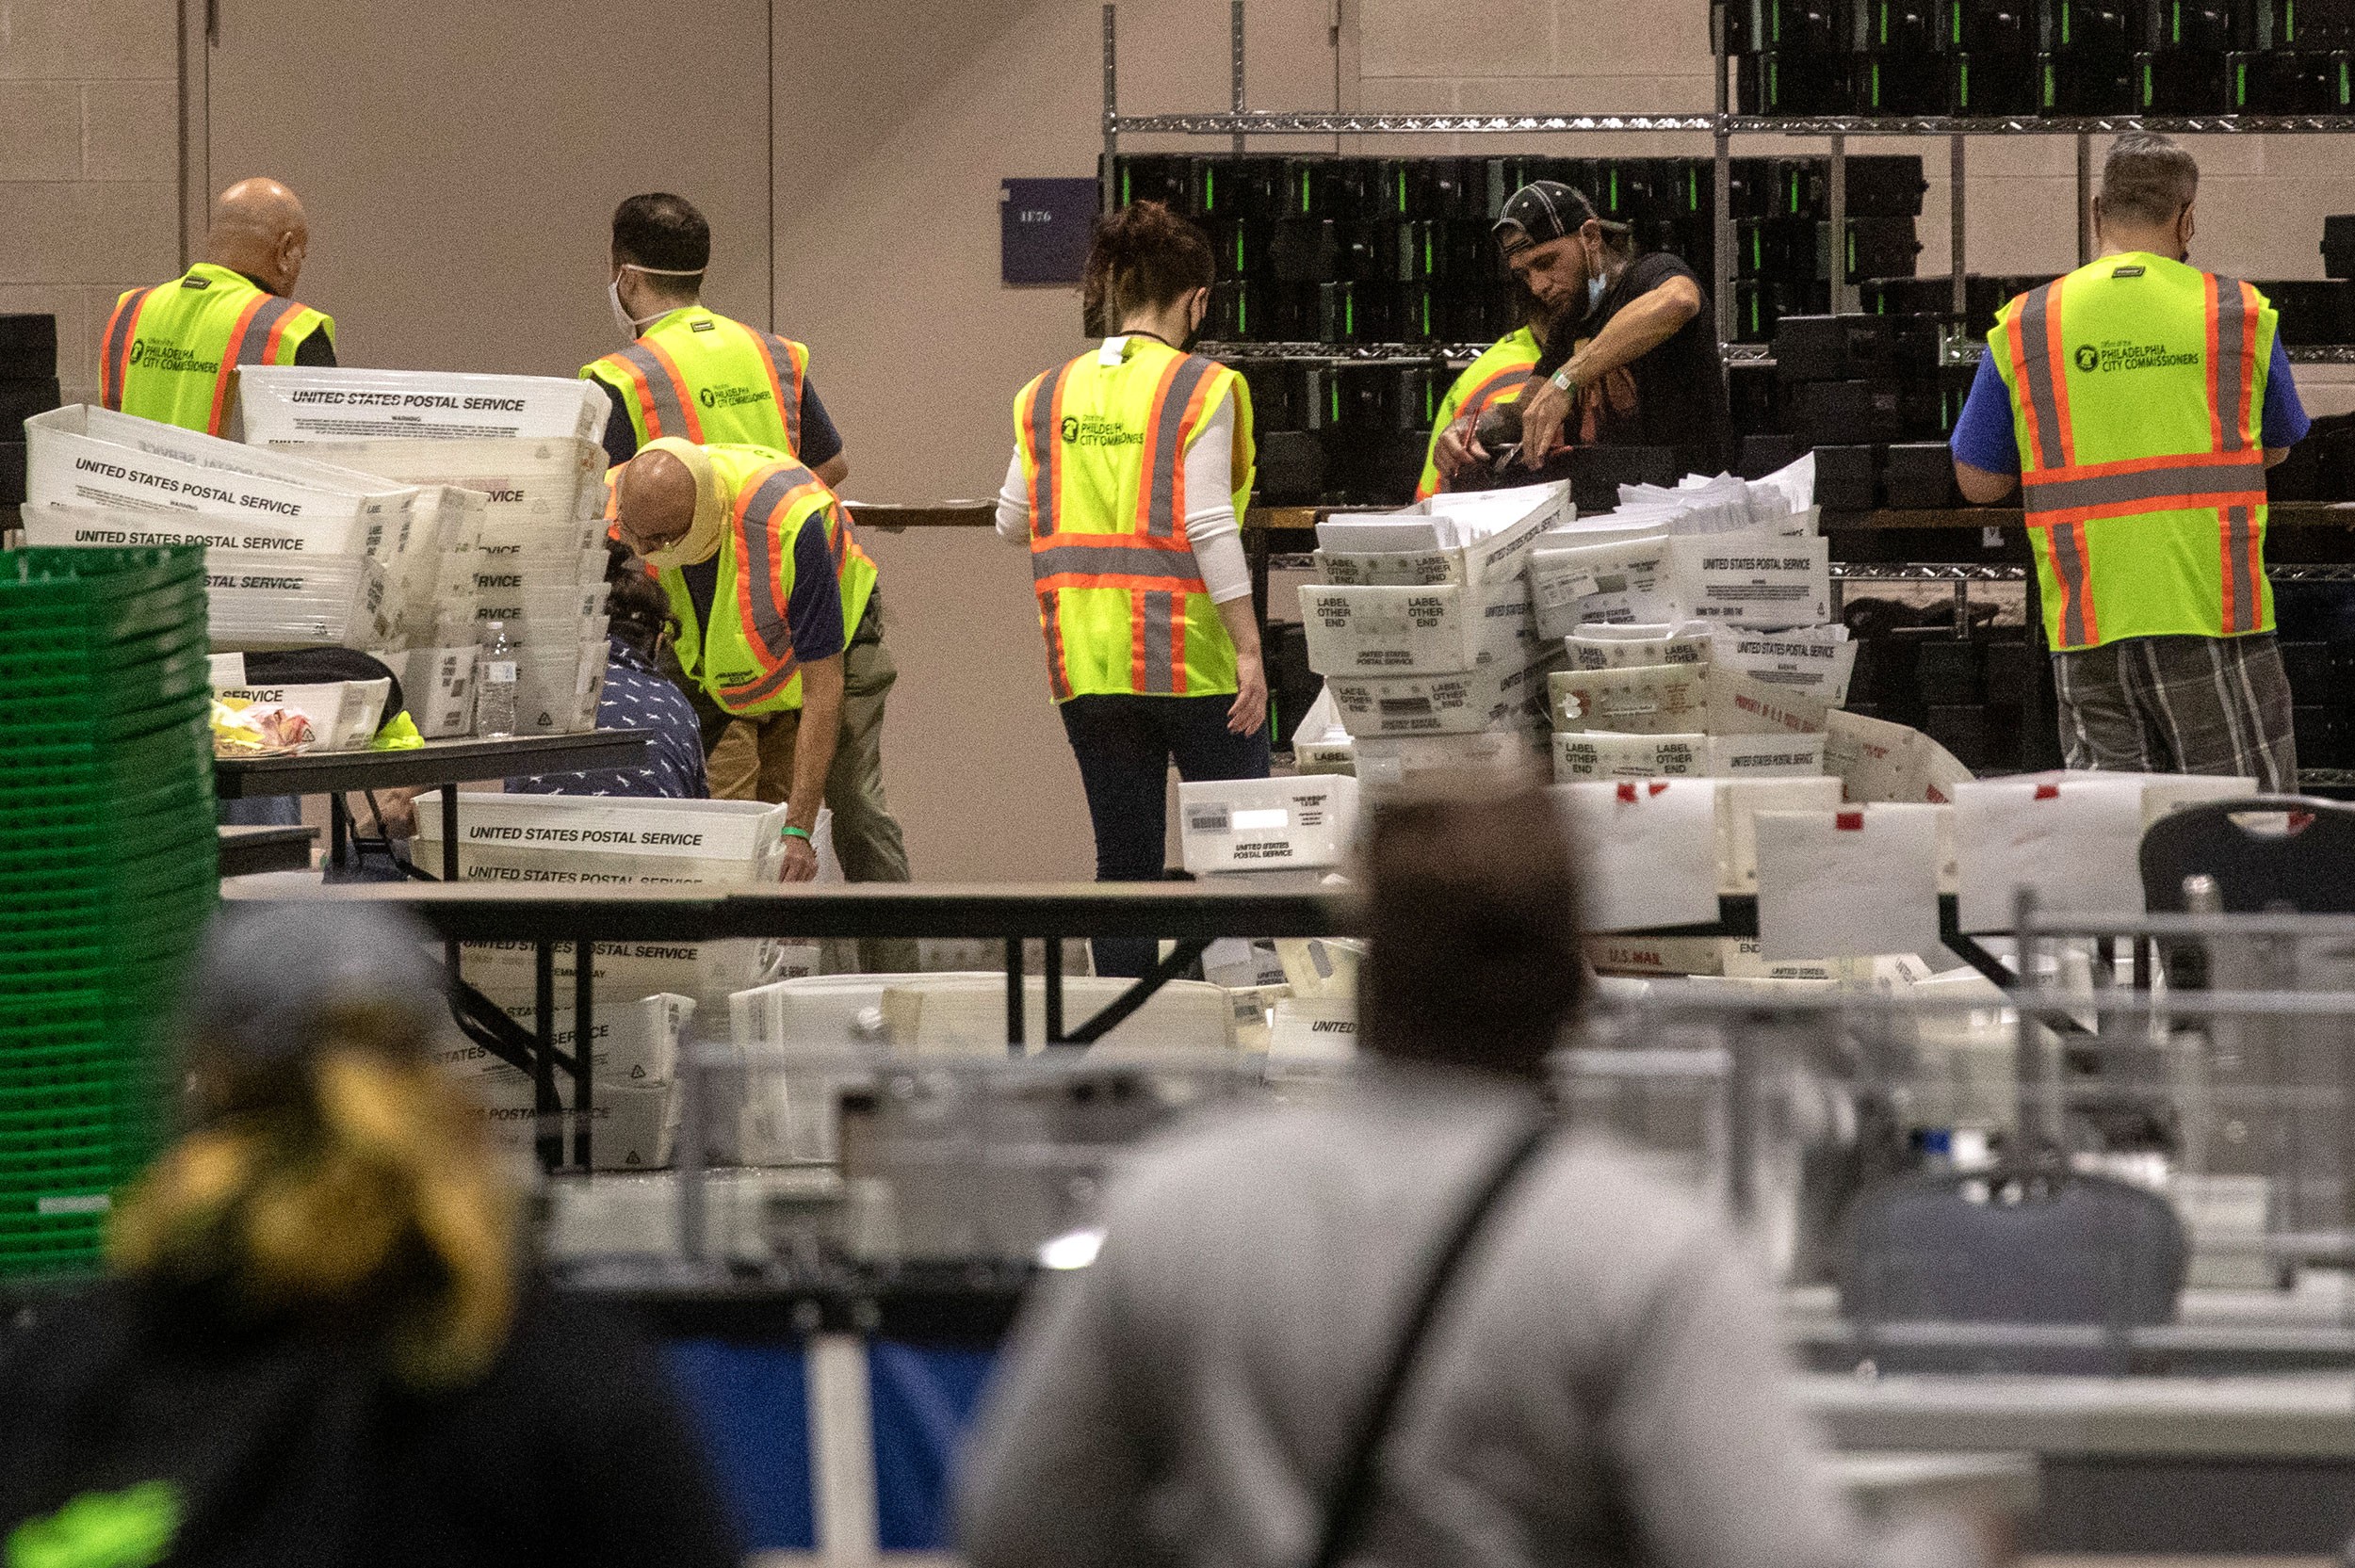 Election workers count ballots on November 6 in Philadelphia, Pennsylvania.